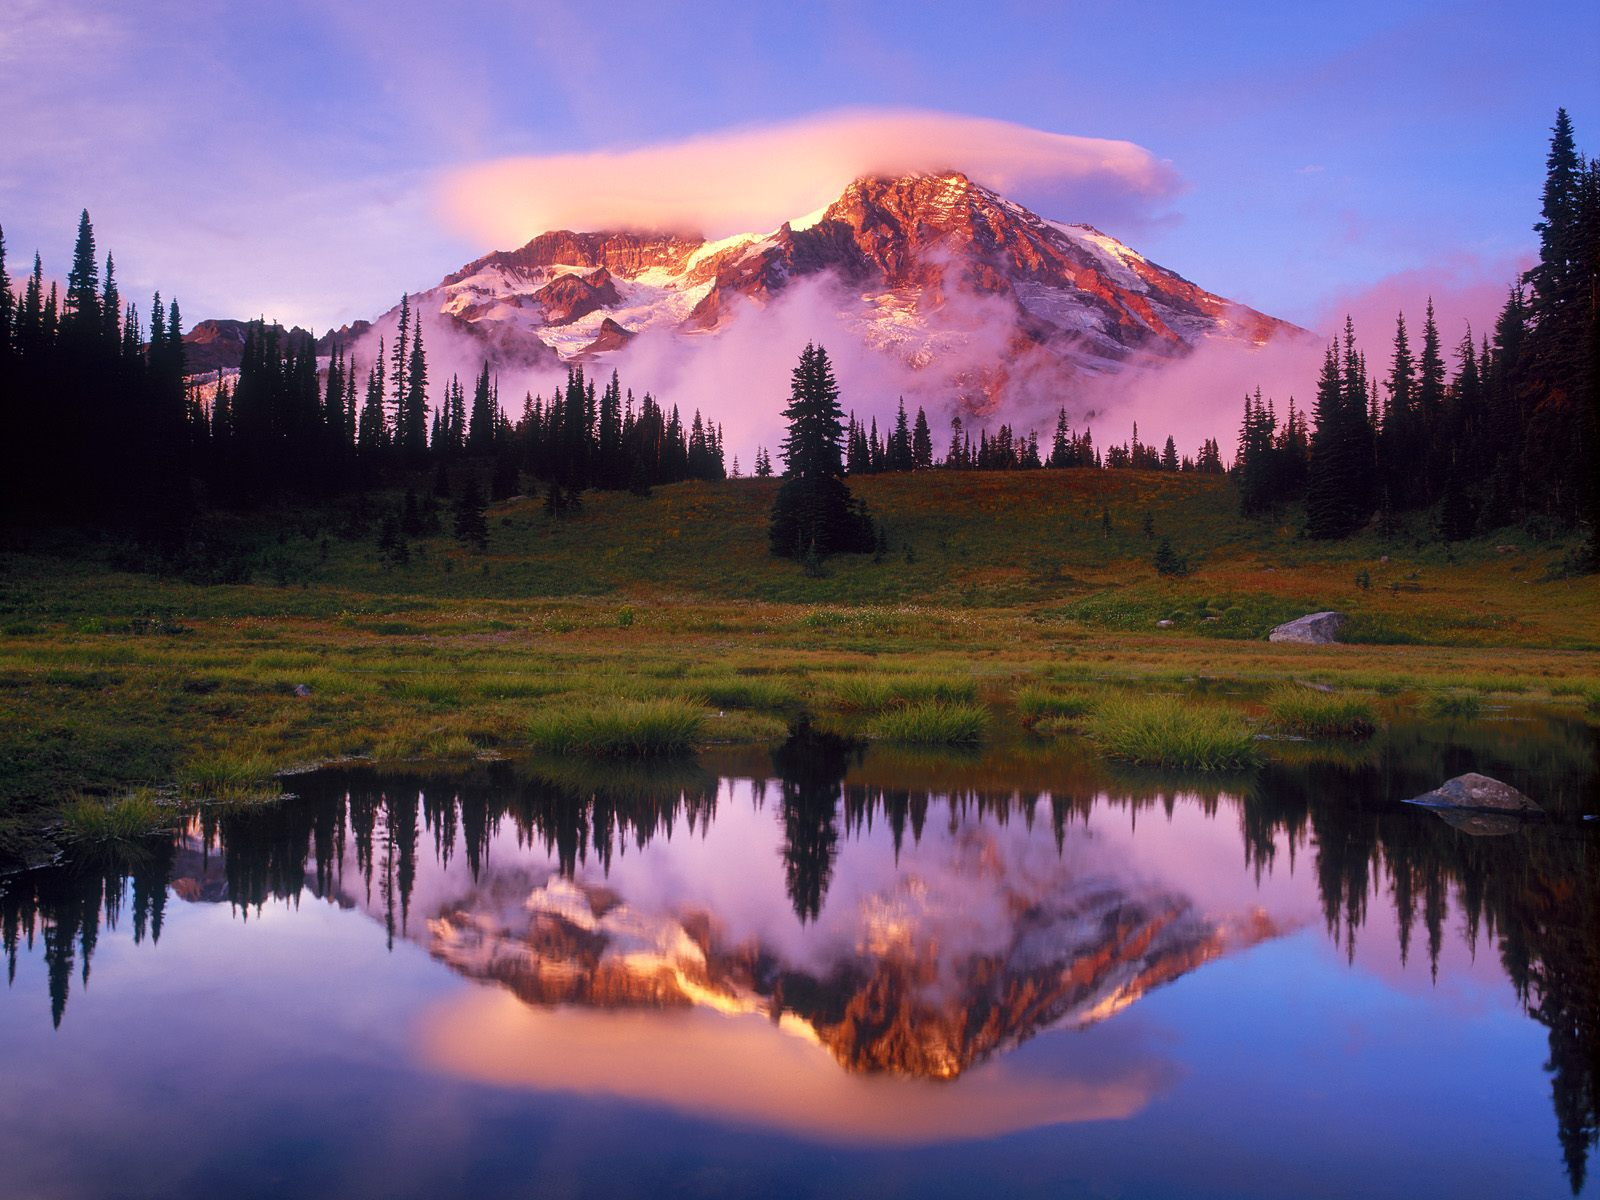 Mt. Rainier in all of its splendor! Simple and beautiful, full of ...